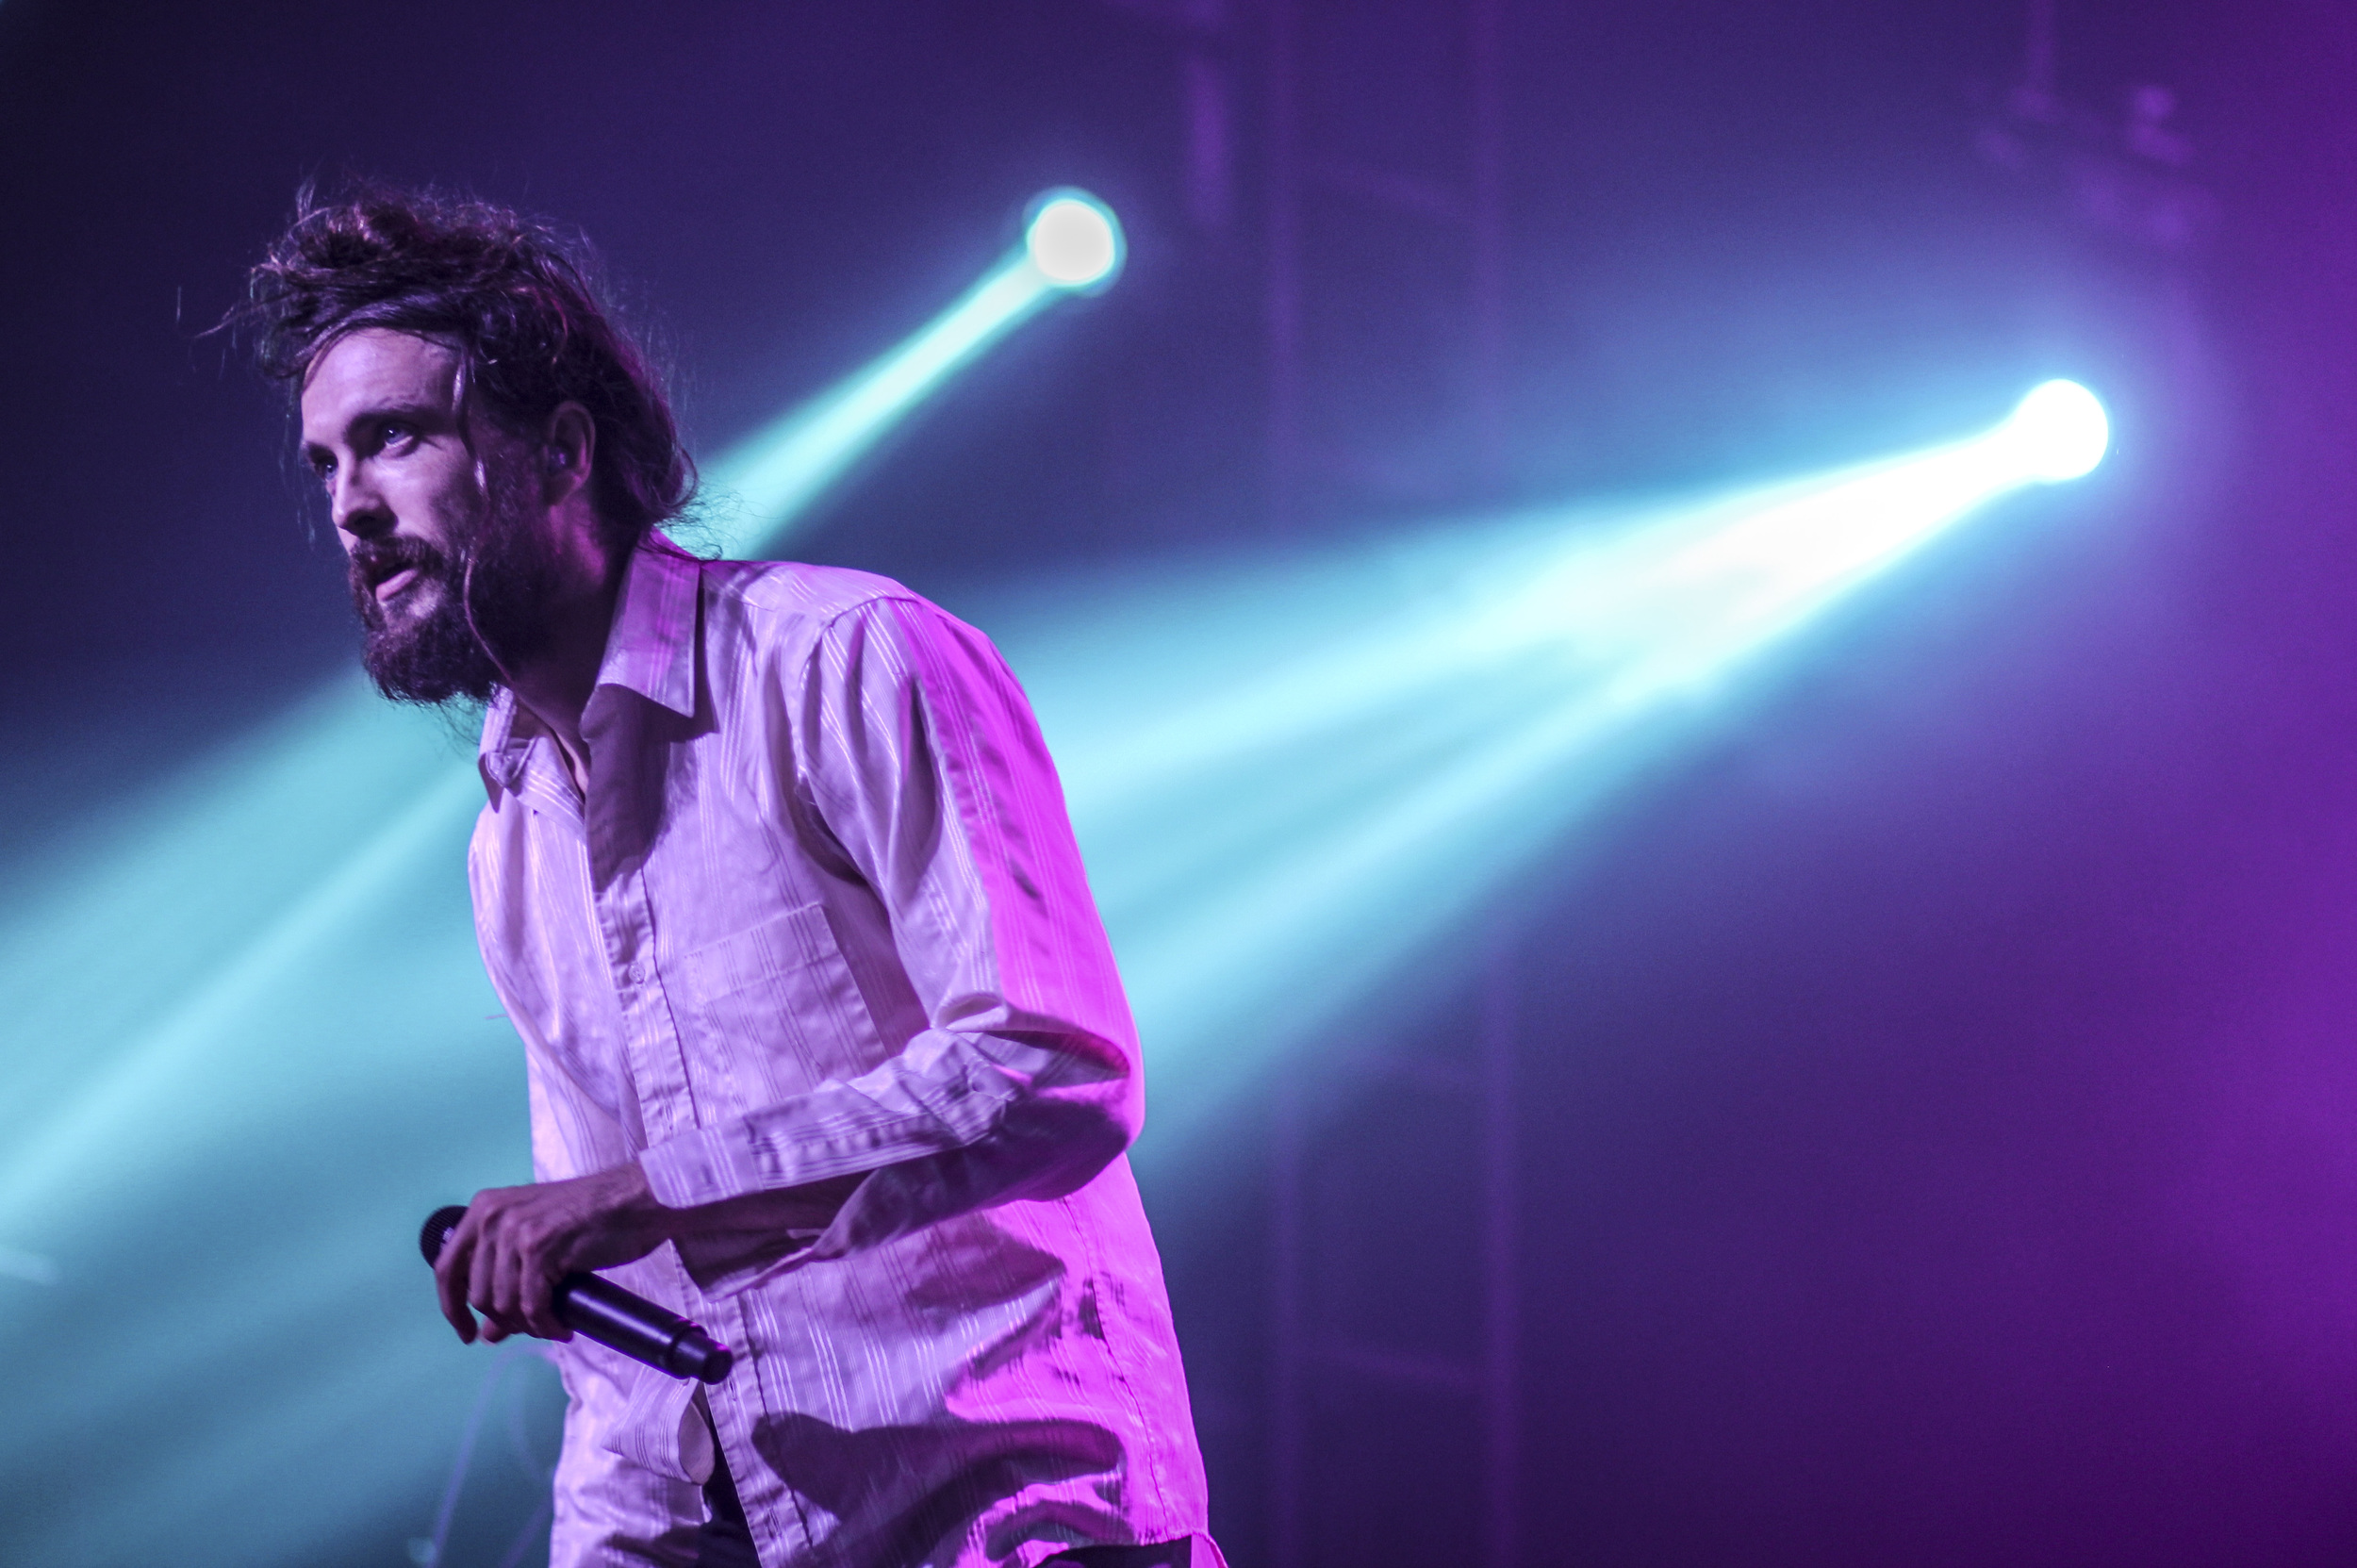 Alex Ebert, Edward Sharpe and the Magnetic Zeros